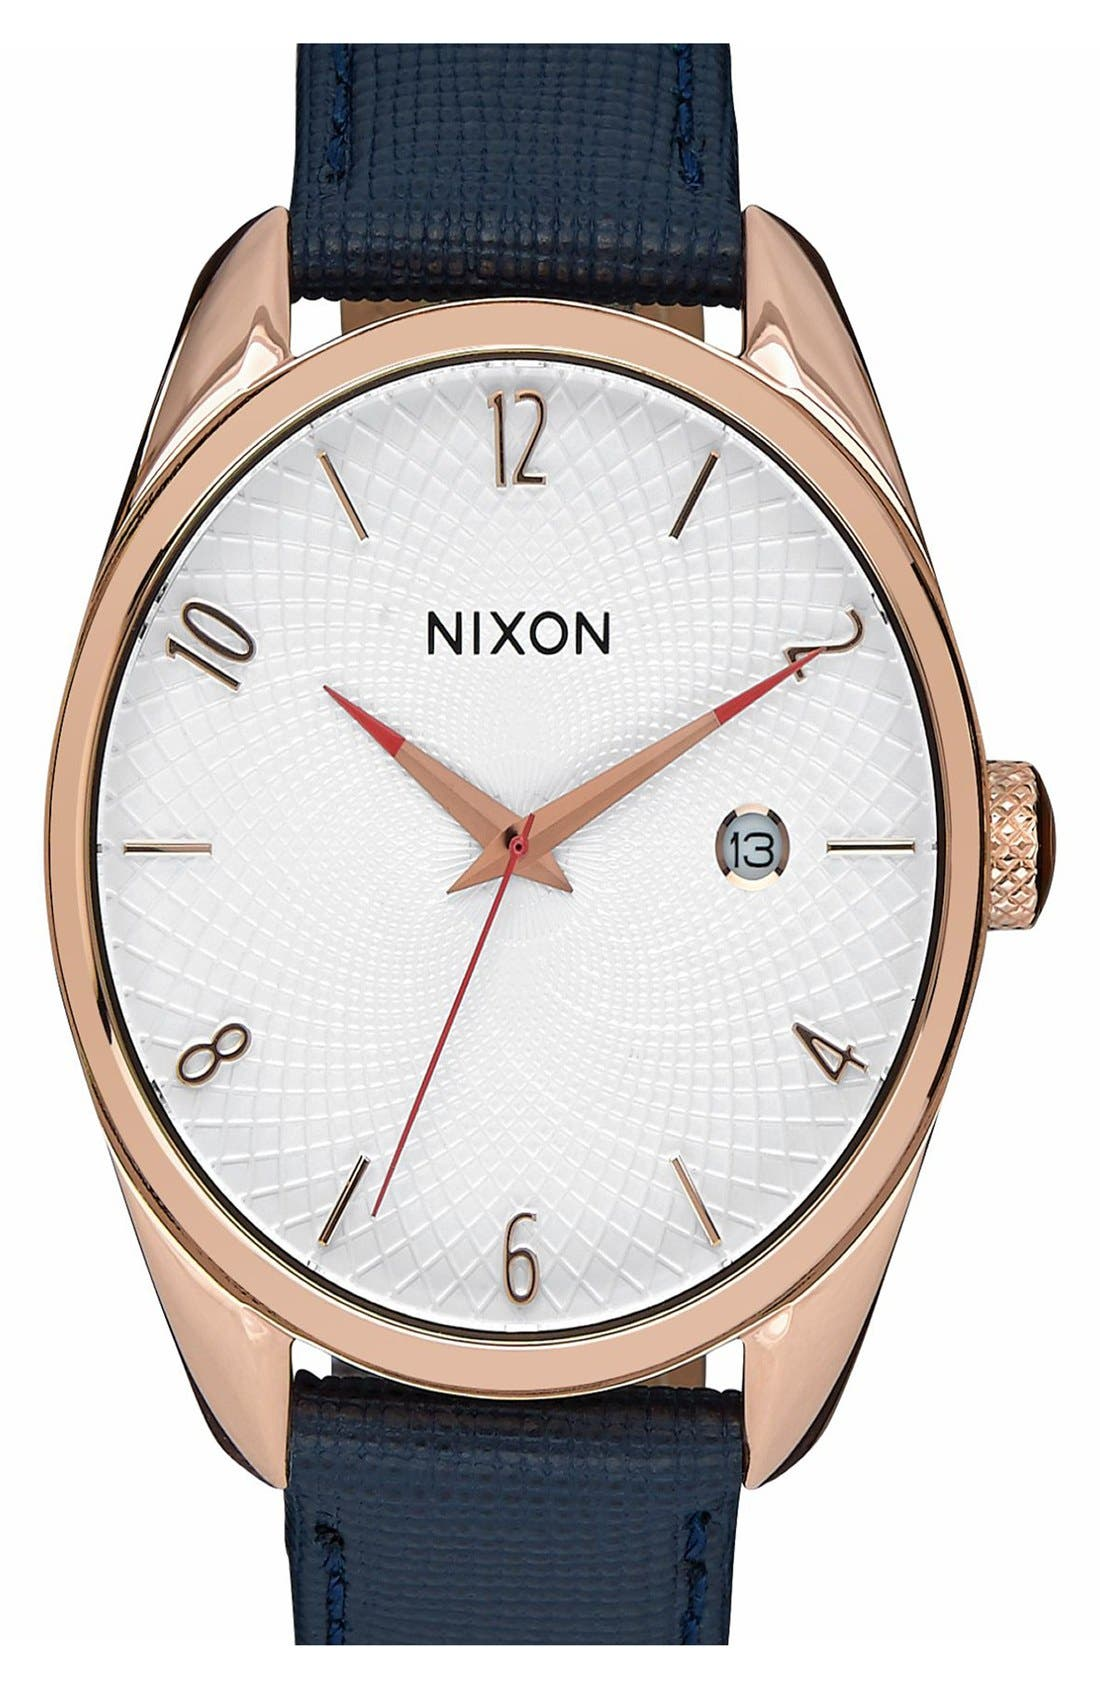 Main Image - Nixon 'Bullet' Guilloche Dial Oval Leather Strap Watch, 38mm